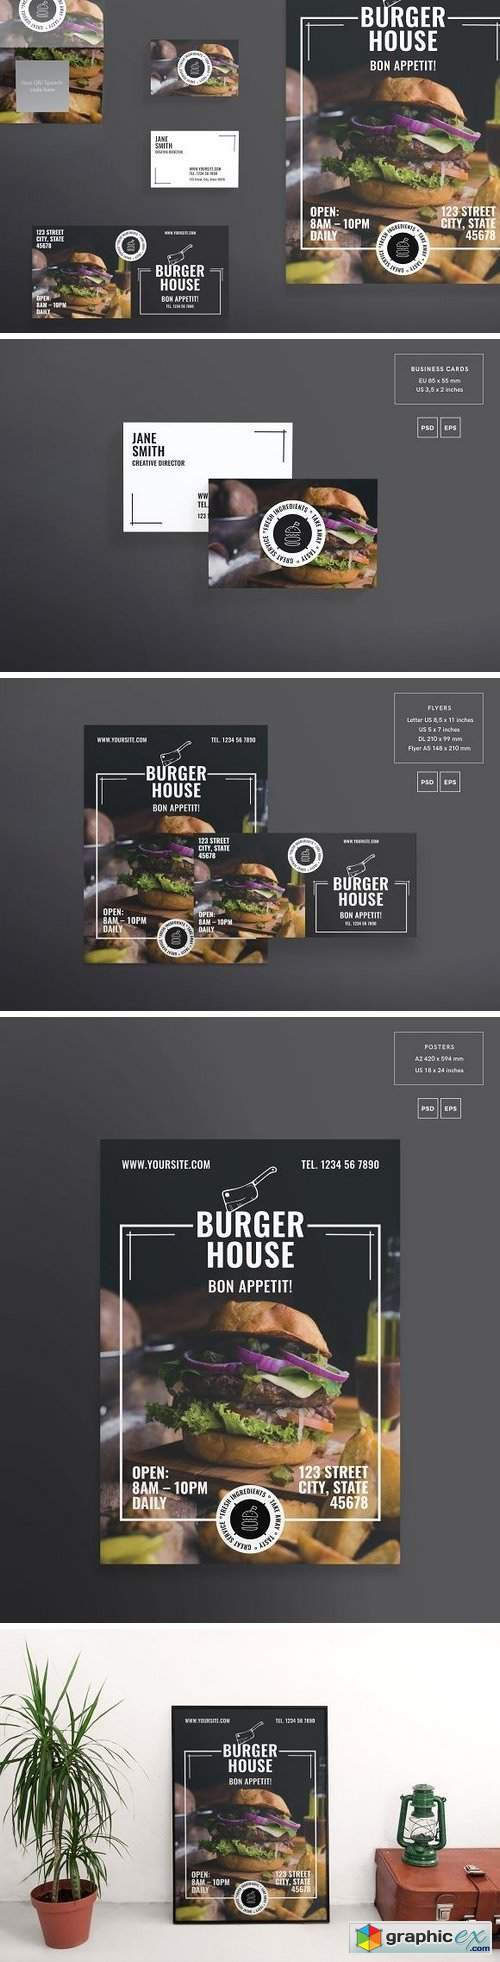 Print Pack | Burger House